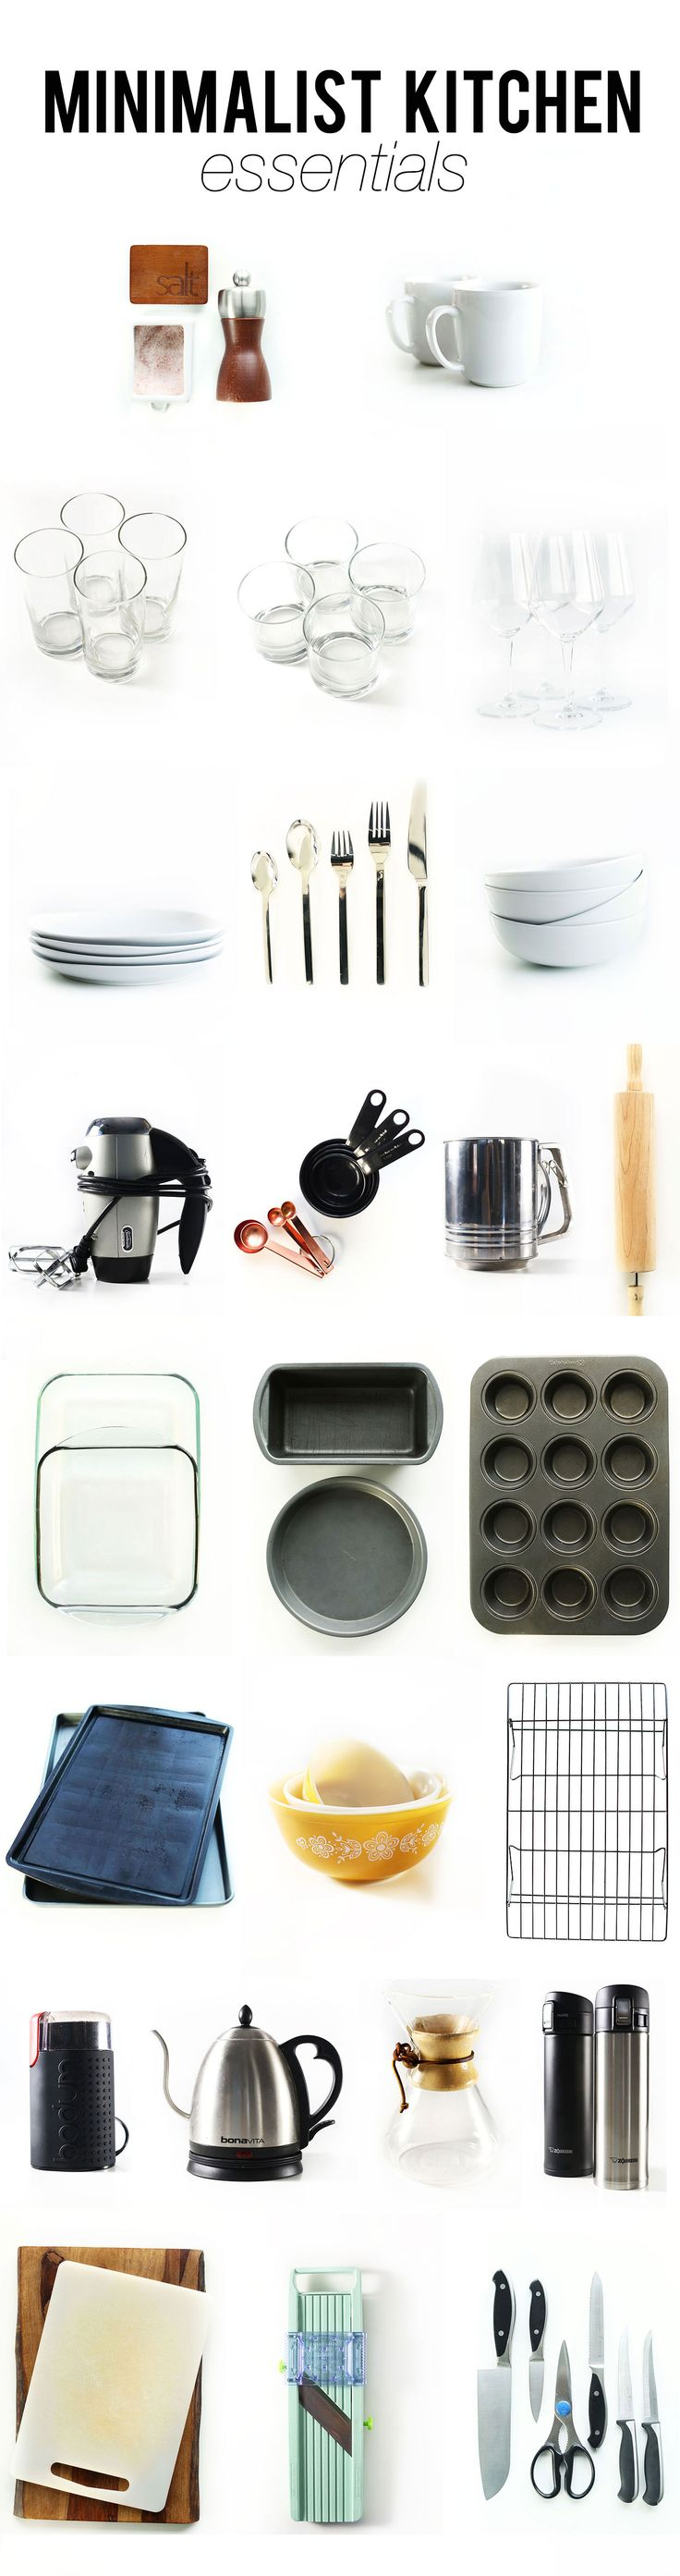 Minimalist Kitchen Essentials | MinimalistBaker.com